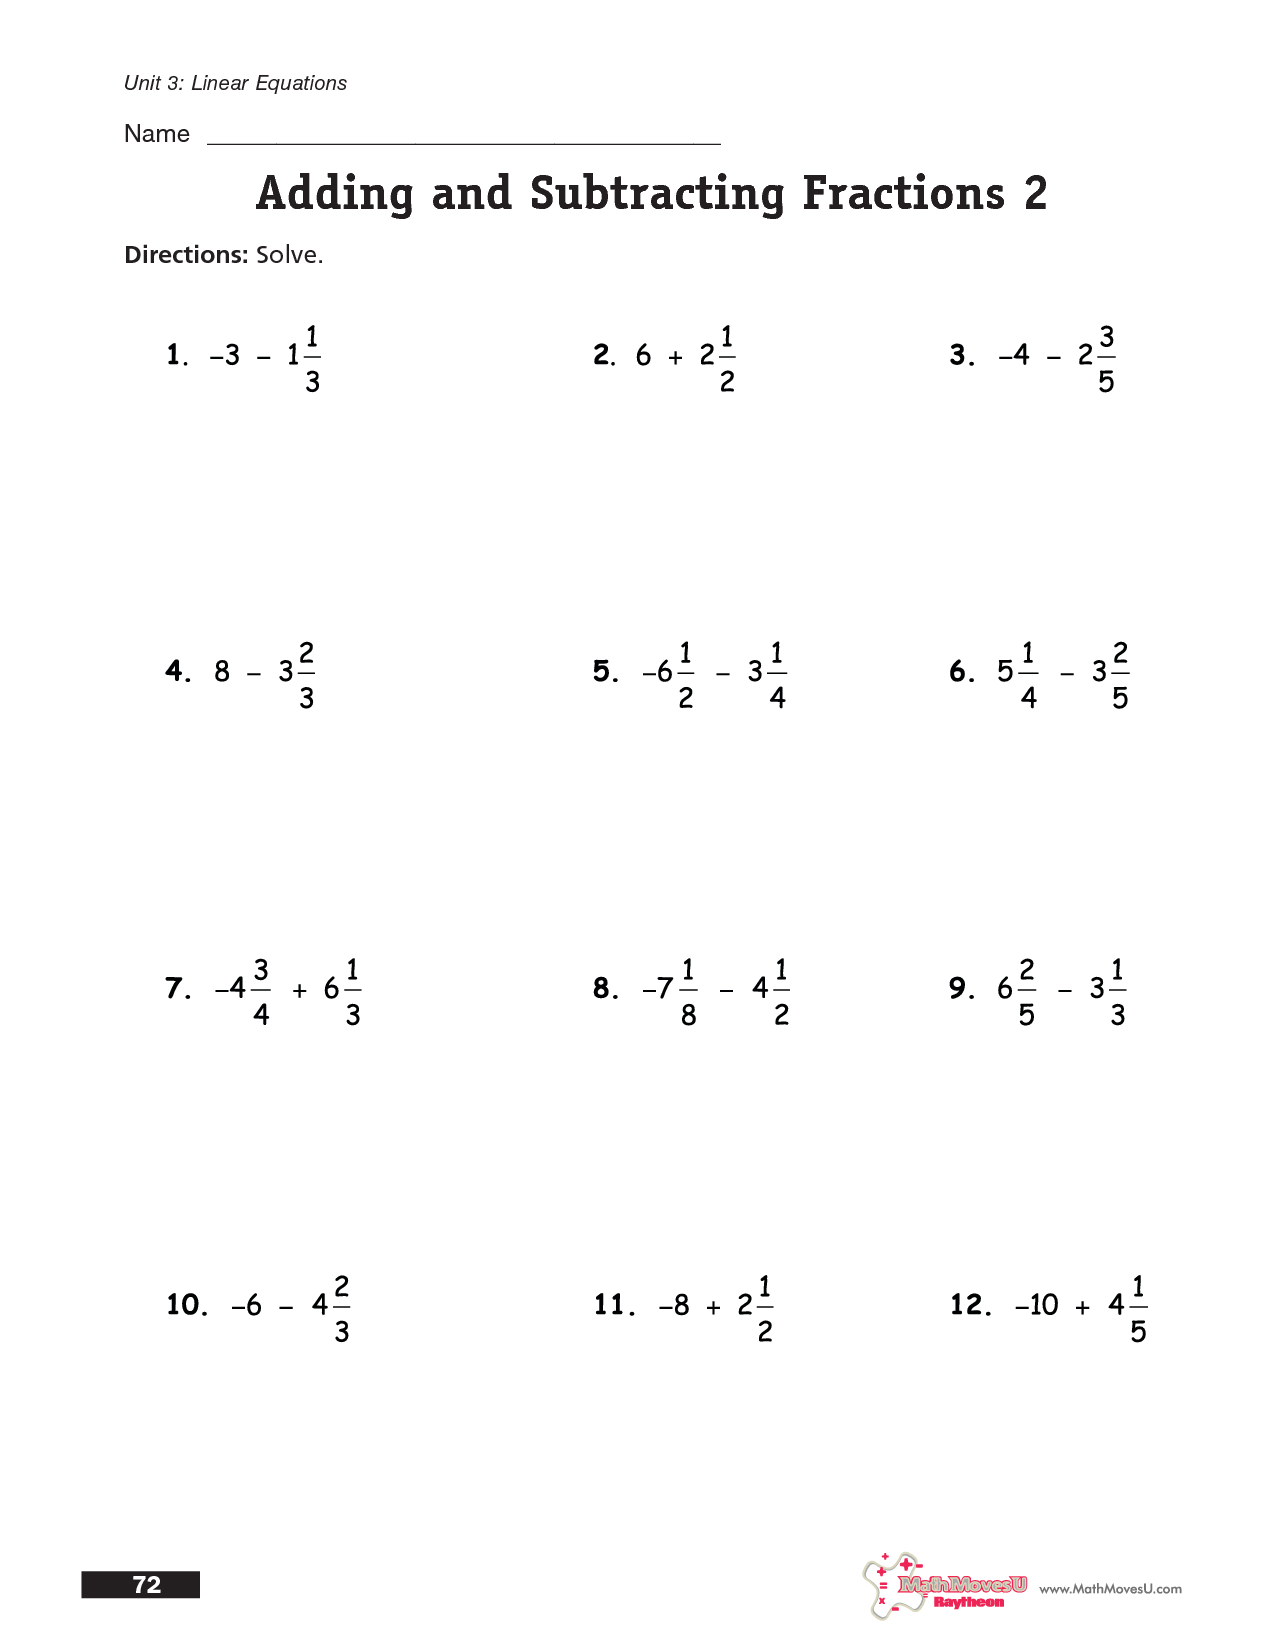 14 Best Images Of Adding And Subtracting Fractions Worksheets